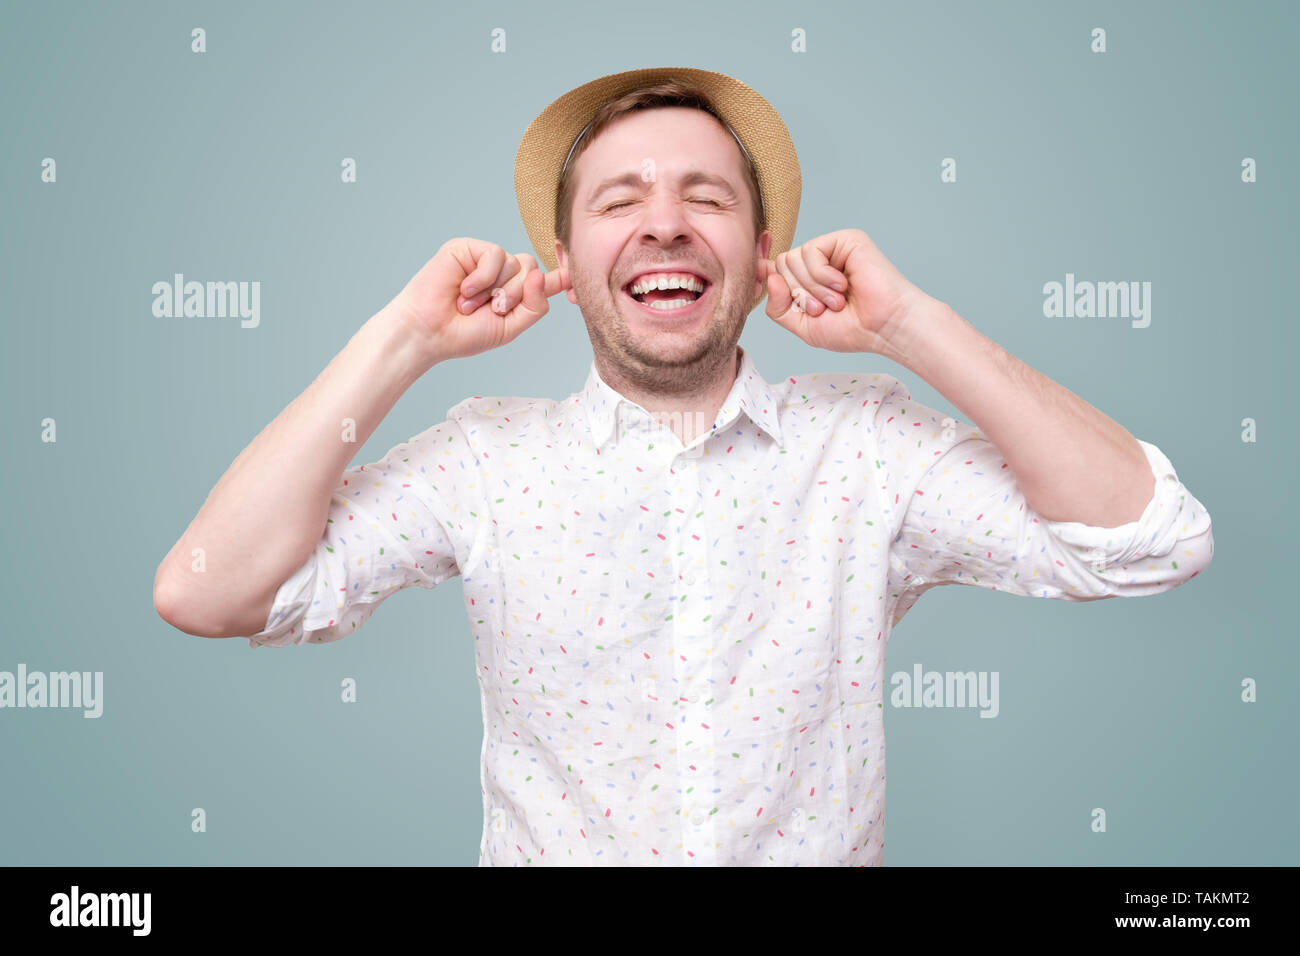 man ears and smiles joyfully as does not want to hear spoiler - Stock Image